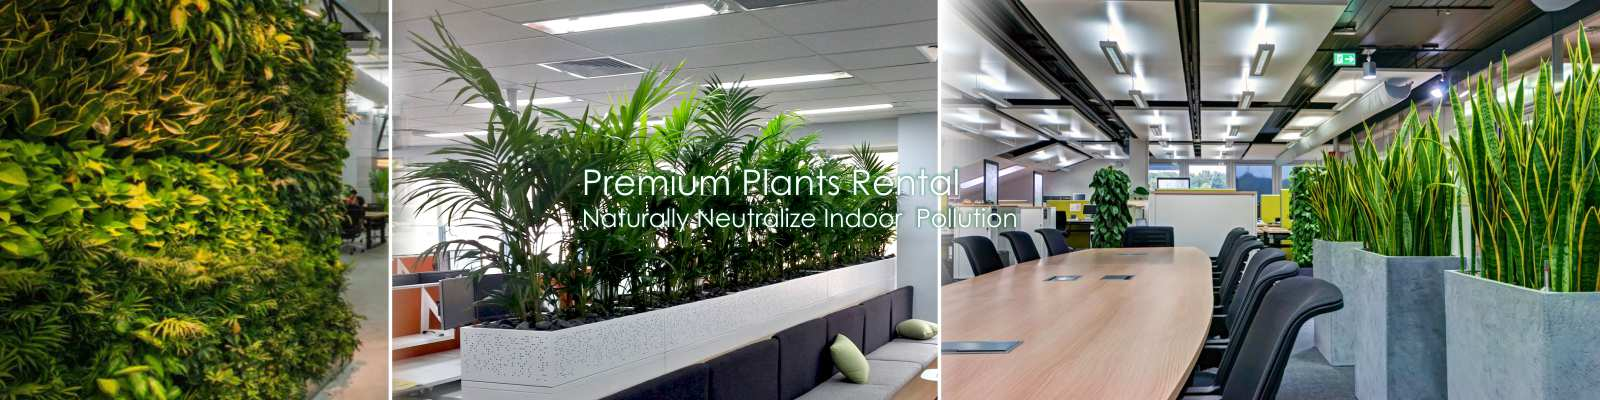 Corporate Air Purifier Office Plants Rental Services Gurgaon, Delhi, Noida